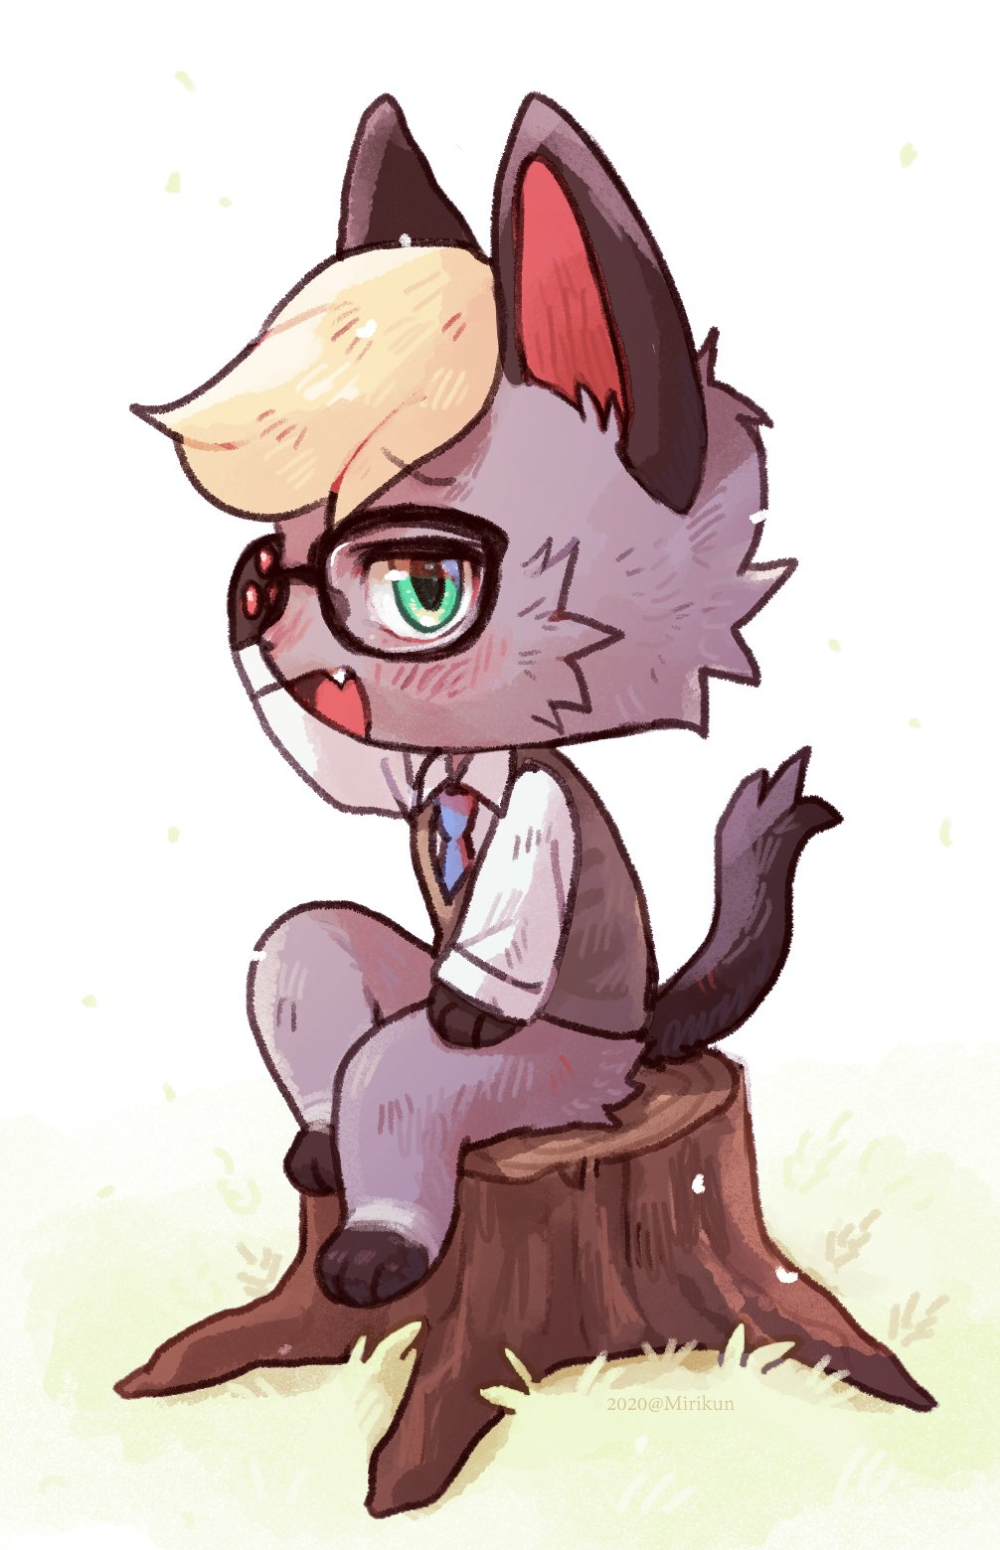 Miri 🕊 on Twitter in 2020 Animal crossing fan art